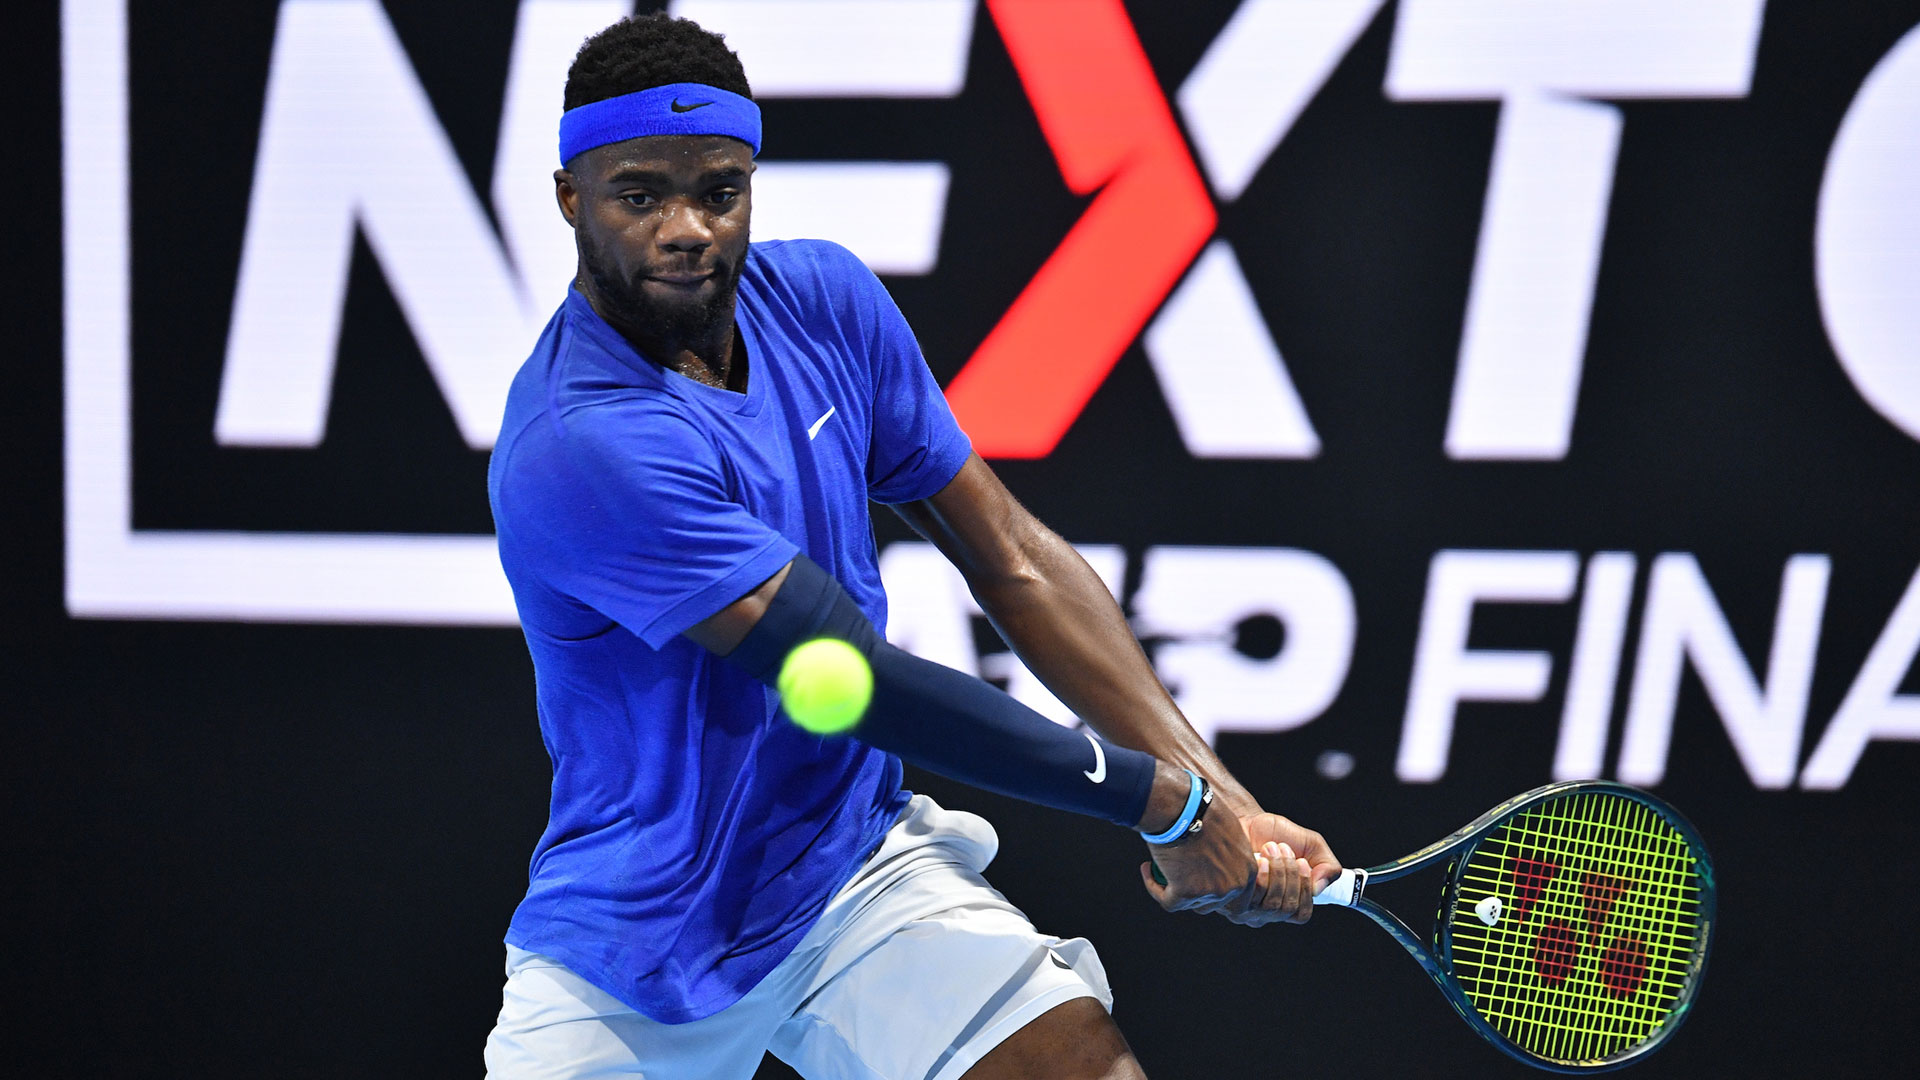 Frances Tiafoe Milan 2019 Thursday